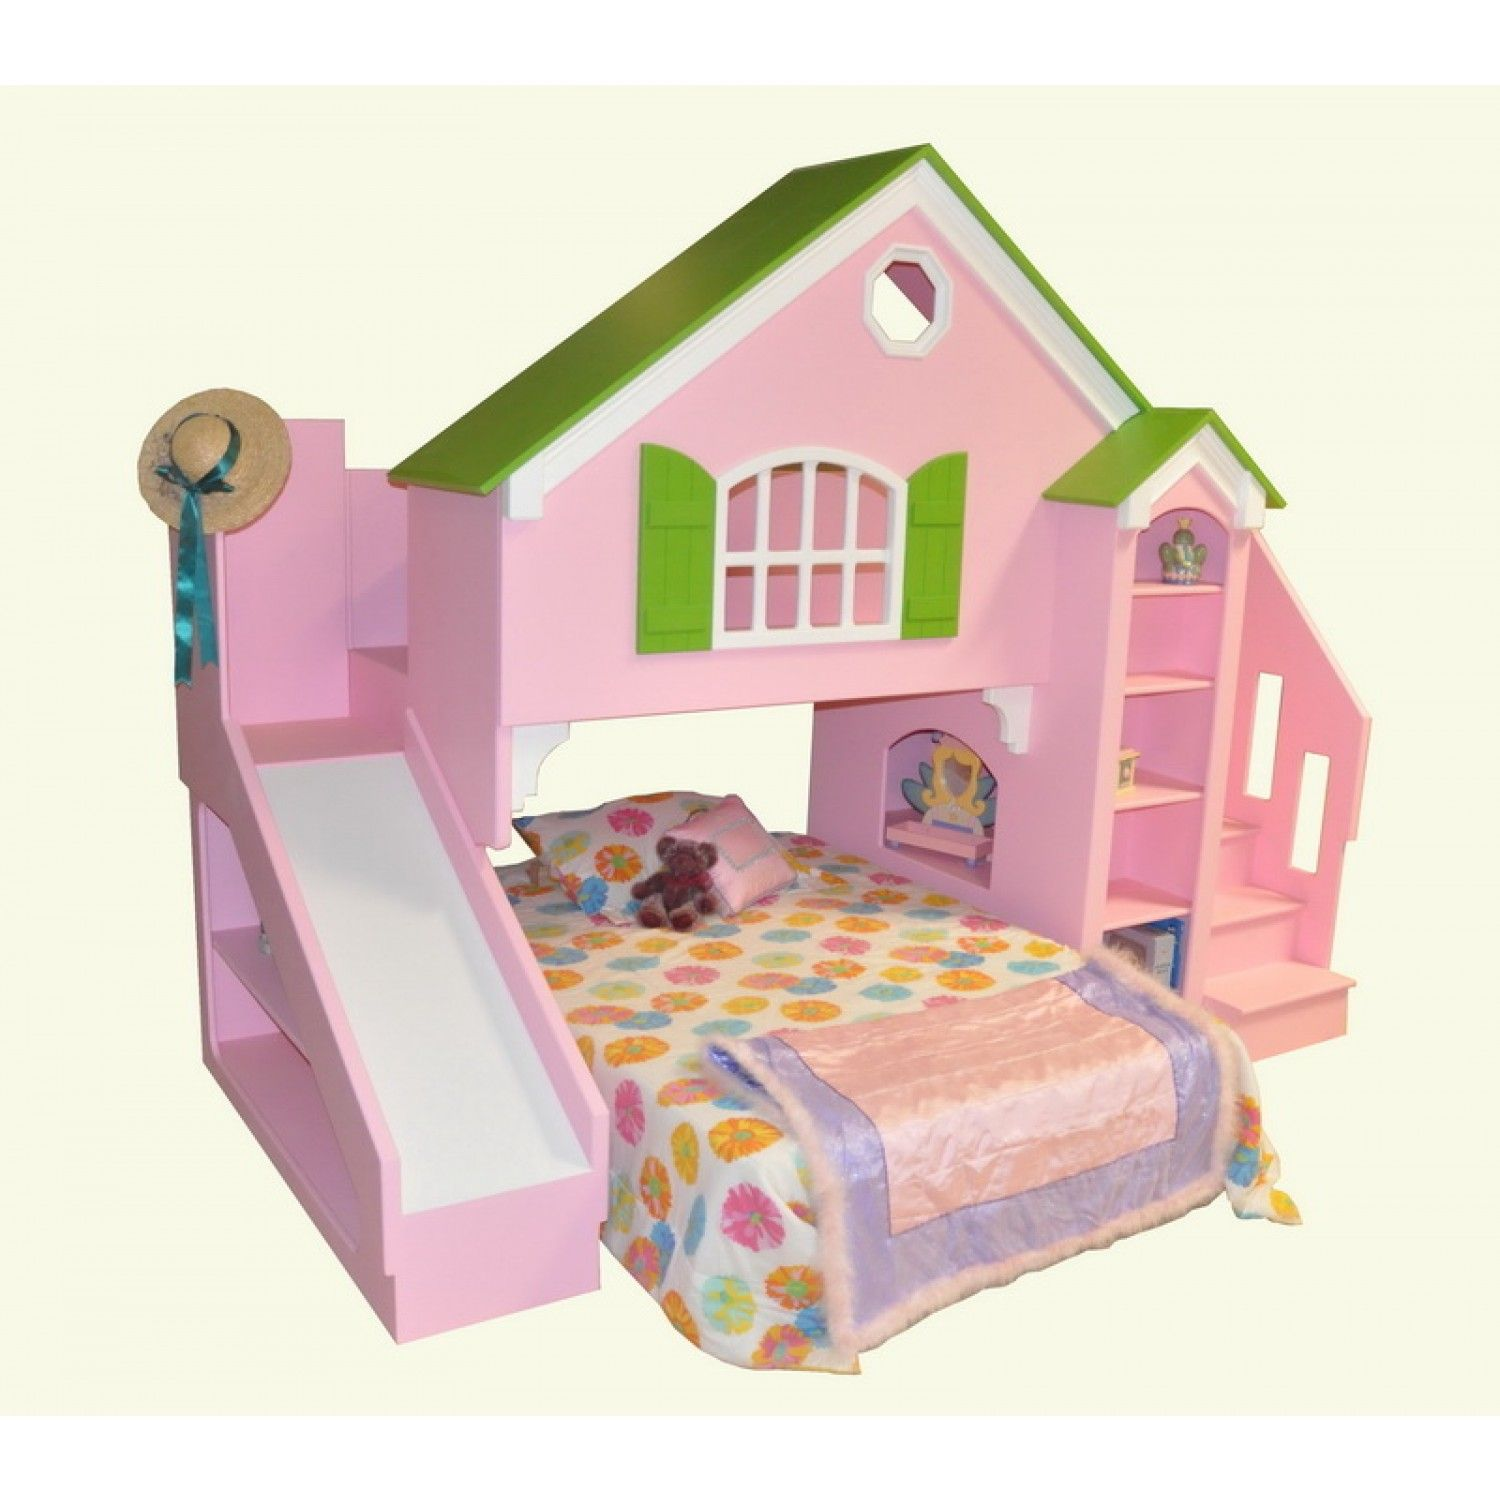 Tanglewood design dollhouse bed plans with optional slide for Futon kids room